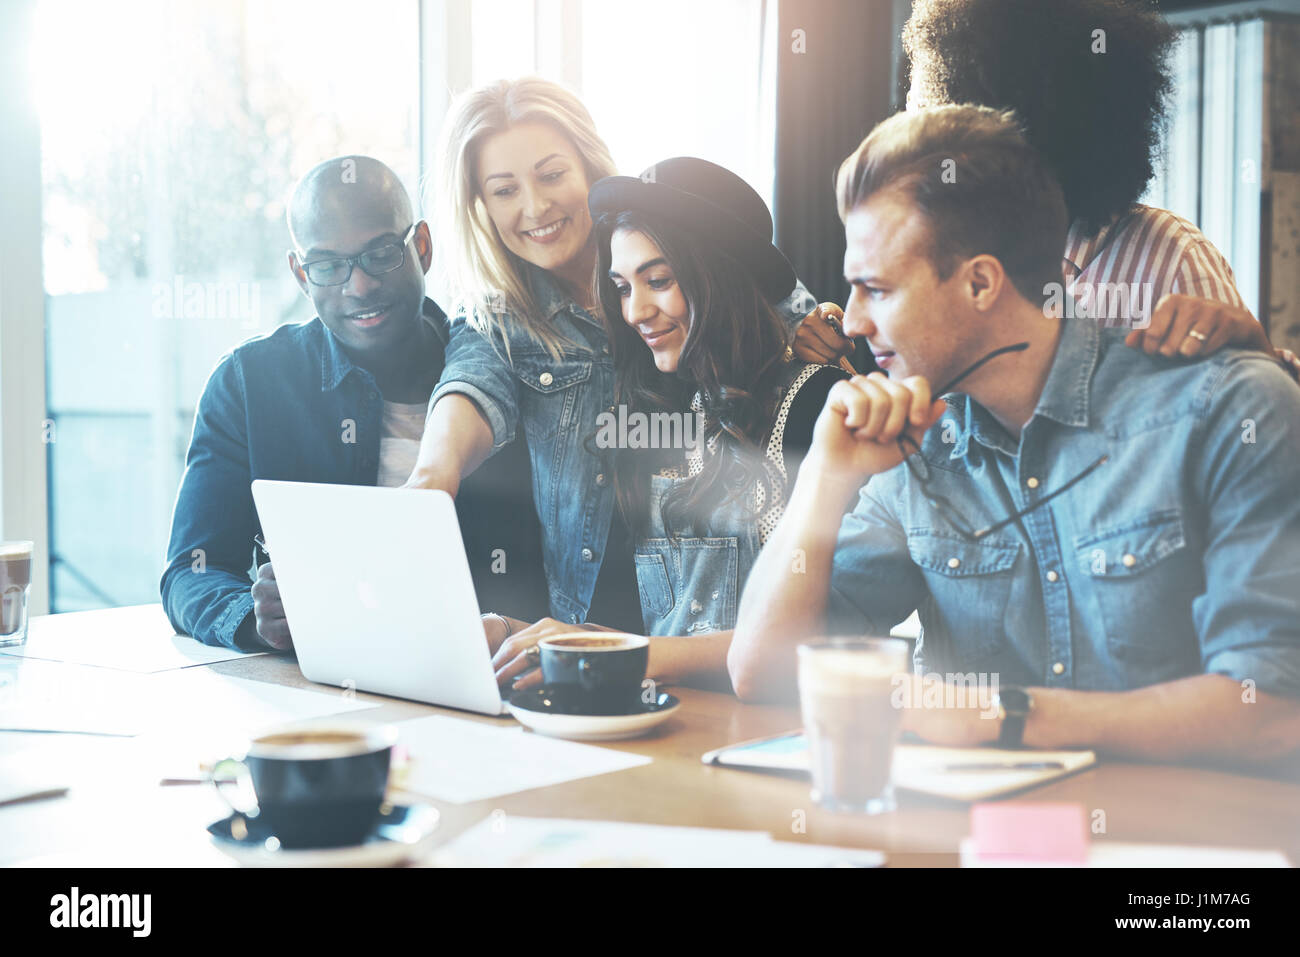 Woman showing coworkers something on laptop computer as they gather around a conference table - Stock Image